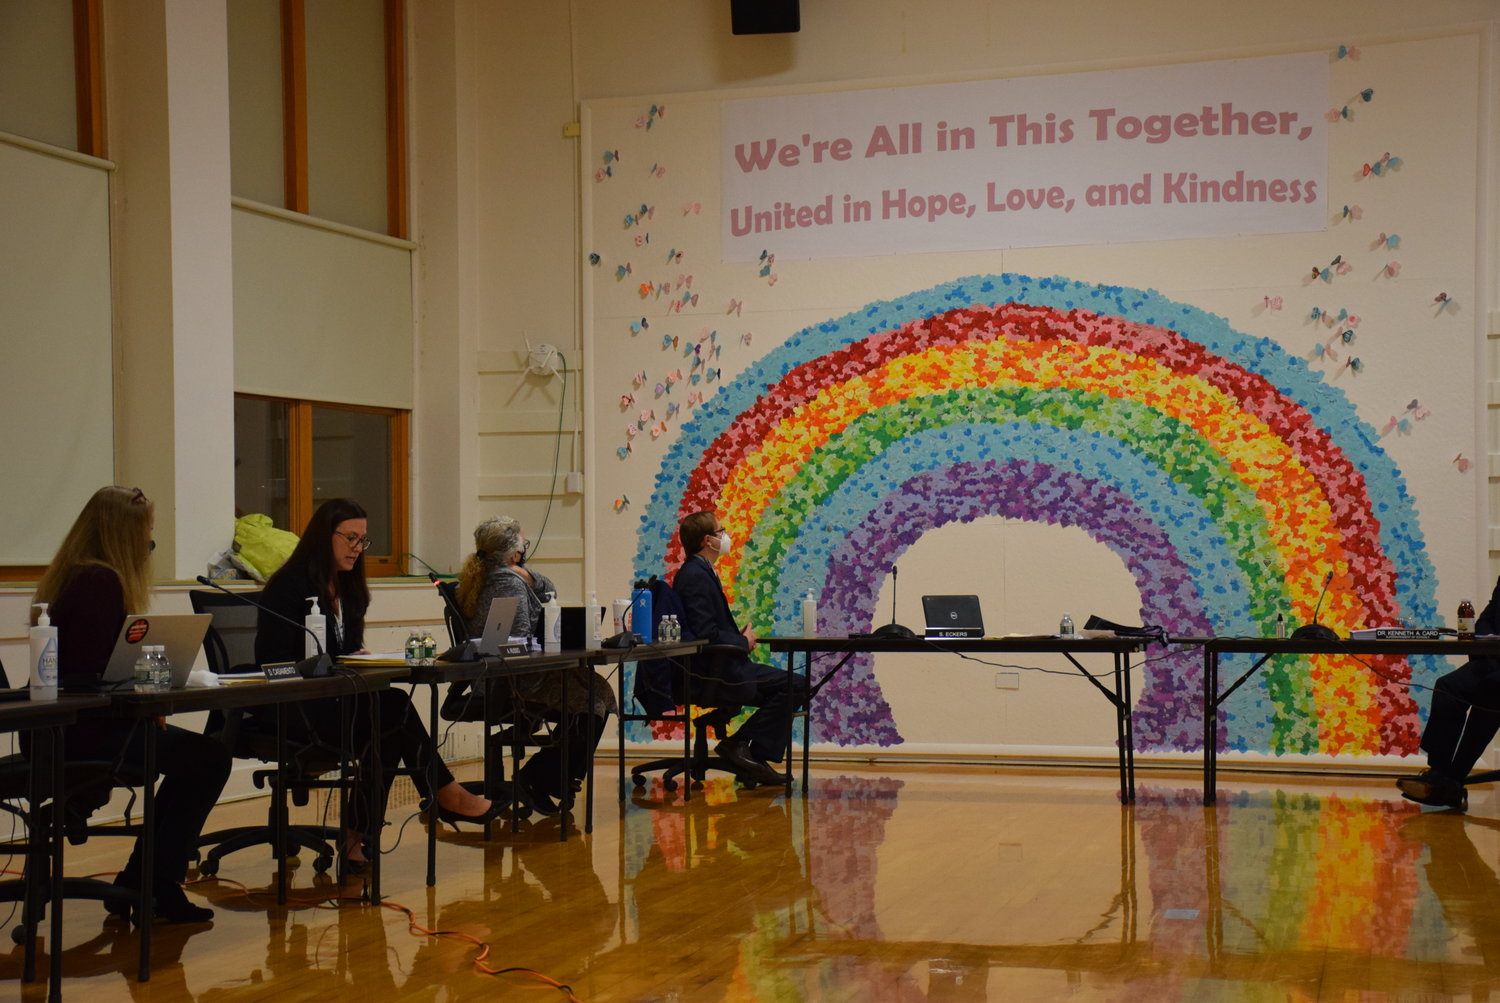 Veronica Nicastro, East Meadow PTA Council president, and Kelly Gelfer, director of music and art, presented the board with the completed Unity Day mural at the board's meeting on Nov. 18.